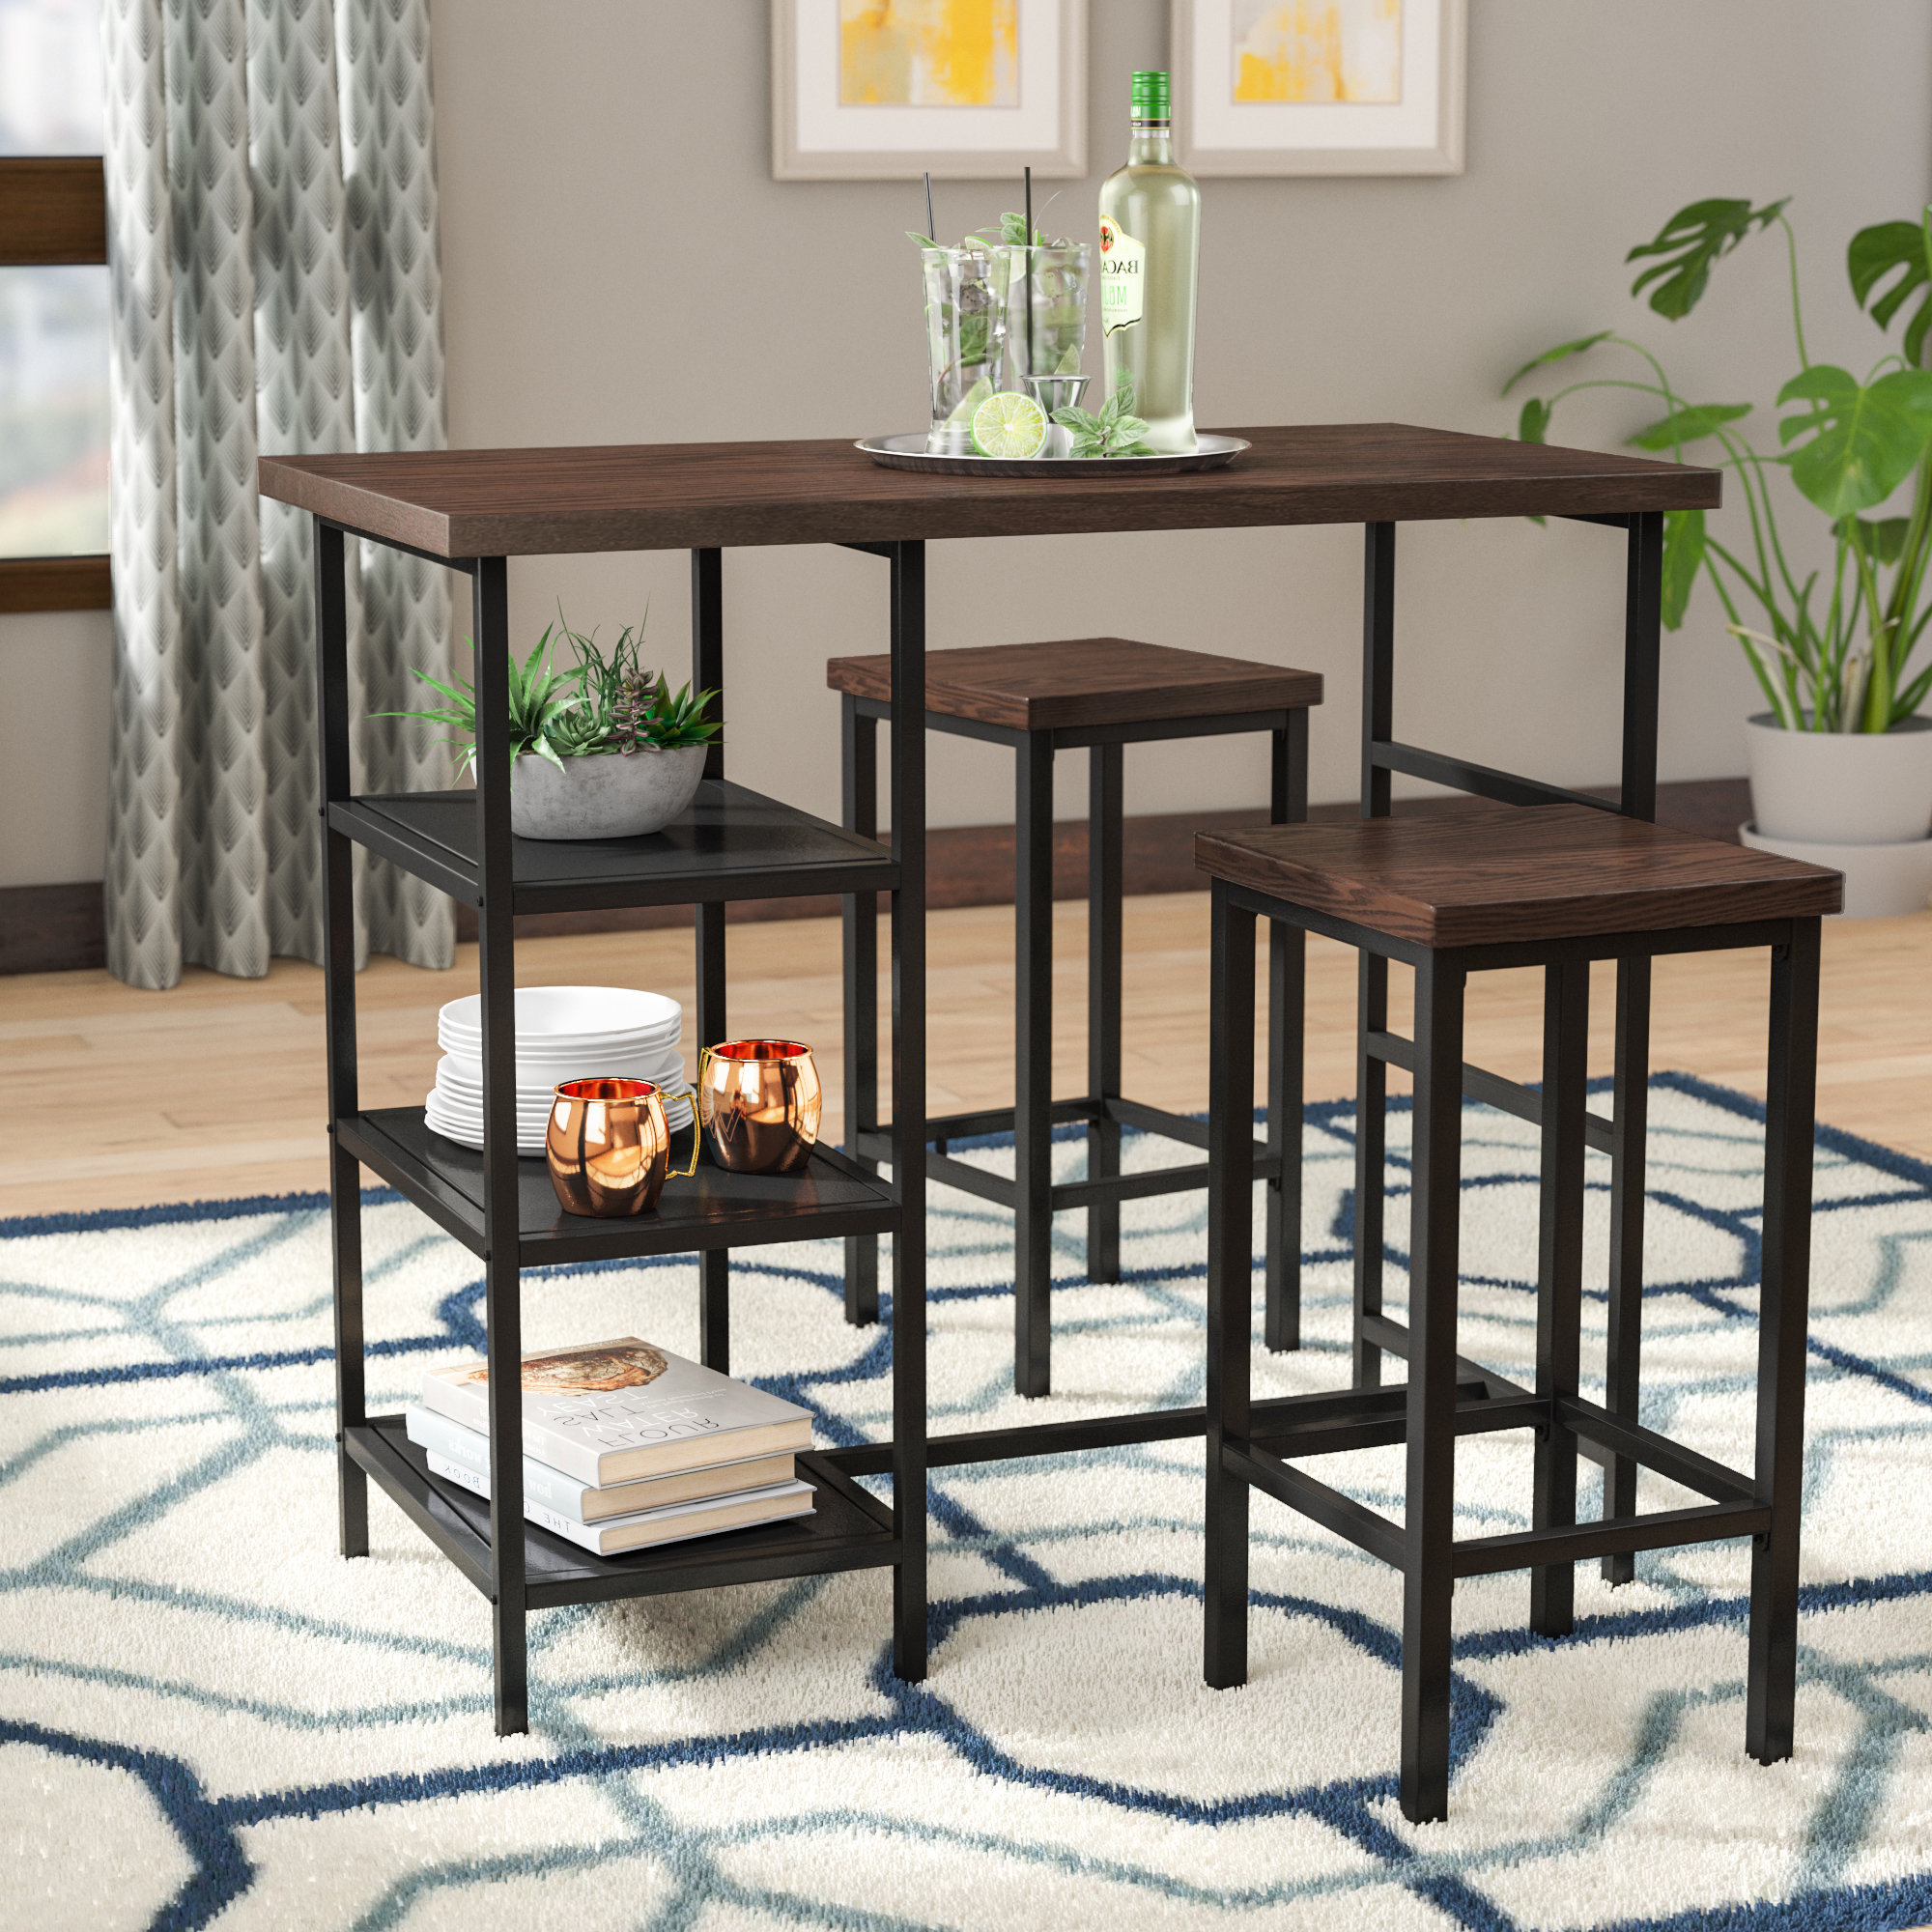 Wayfair Regarding Wallflower 3 Piece Dining Sets (View 18 of 20)